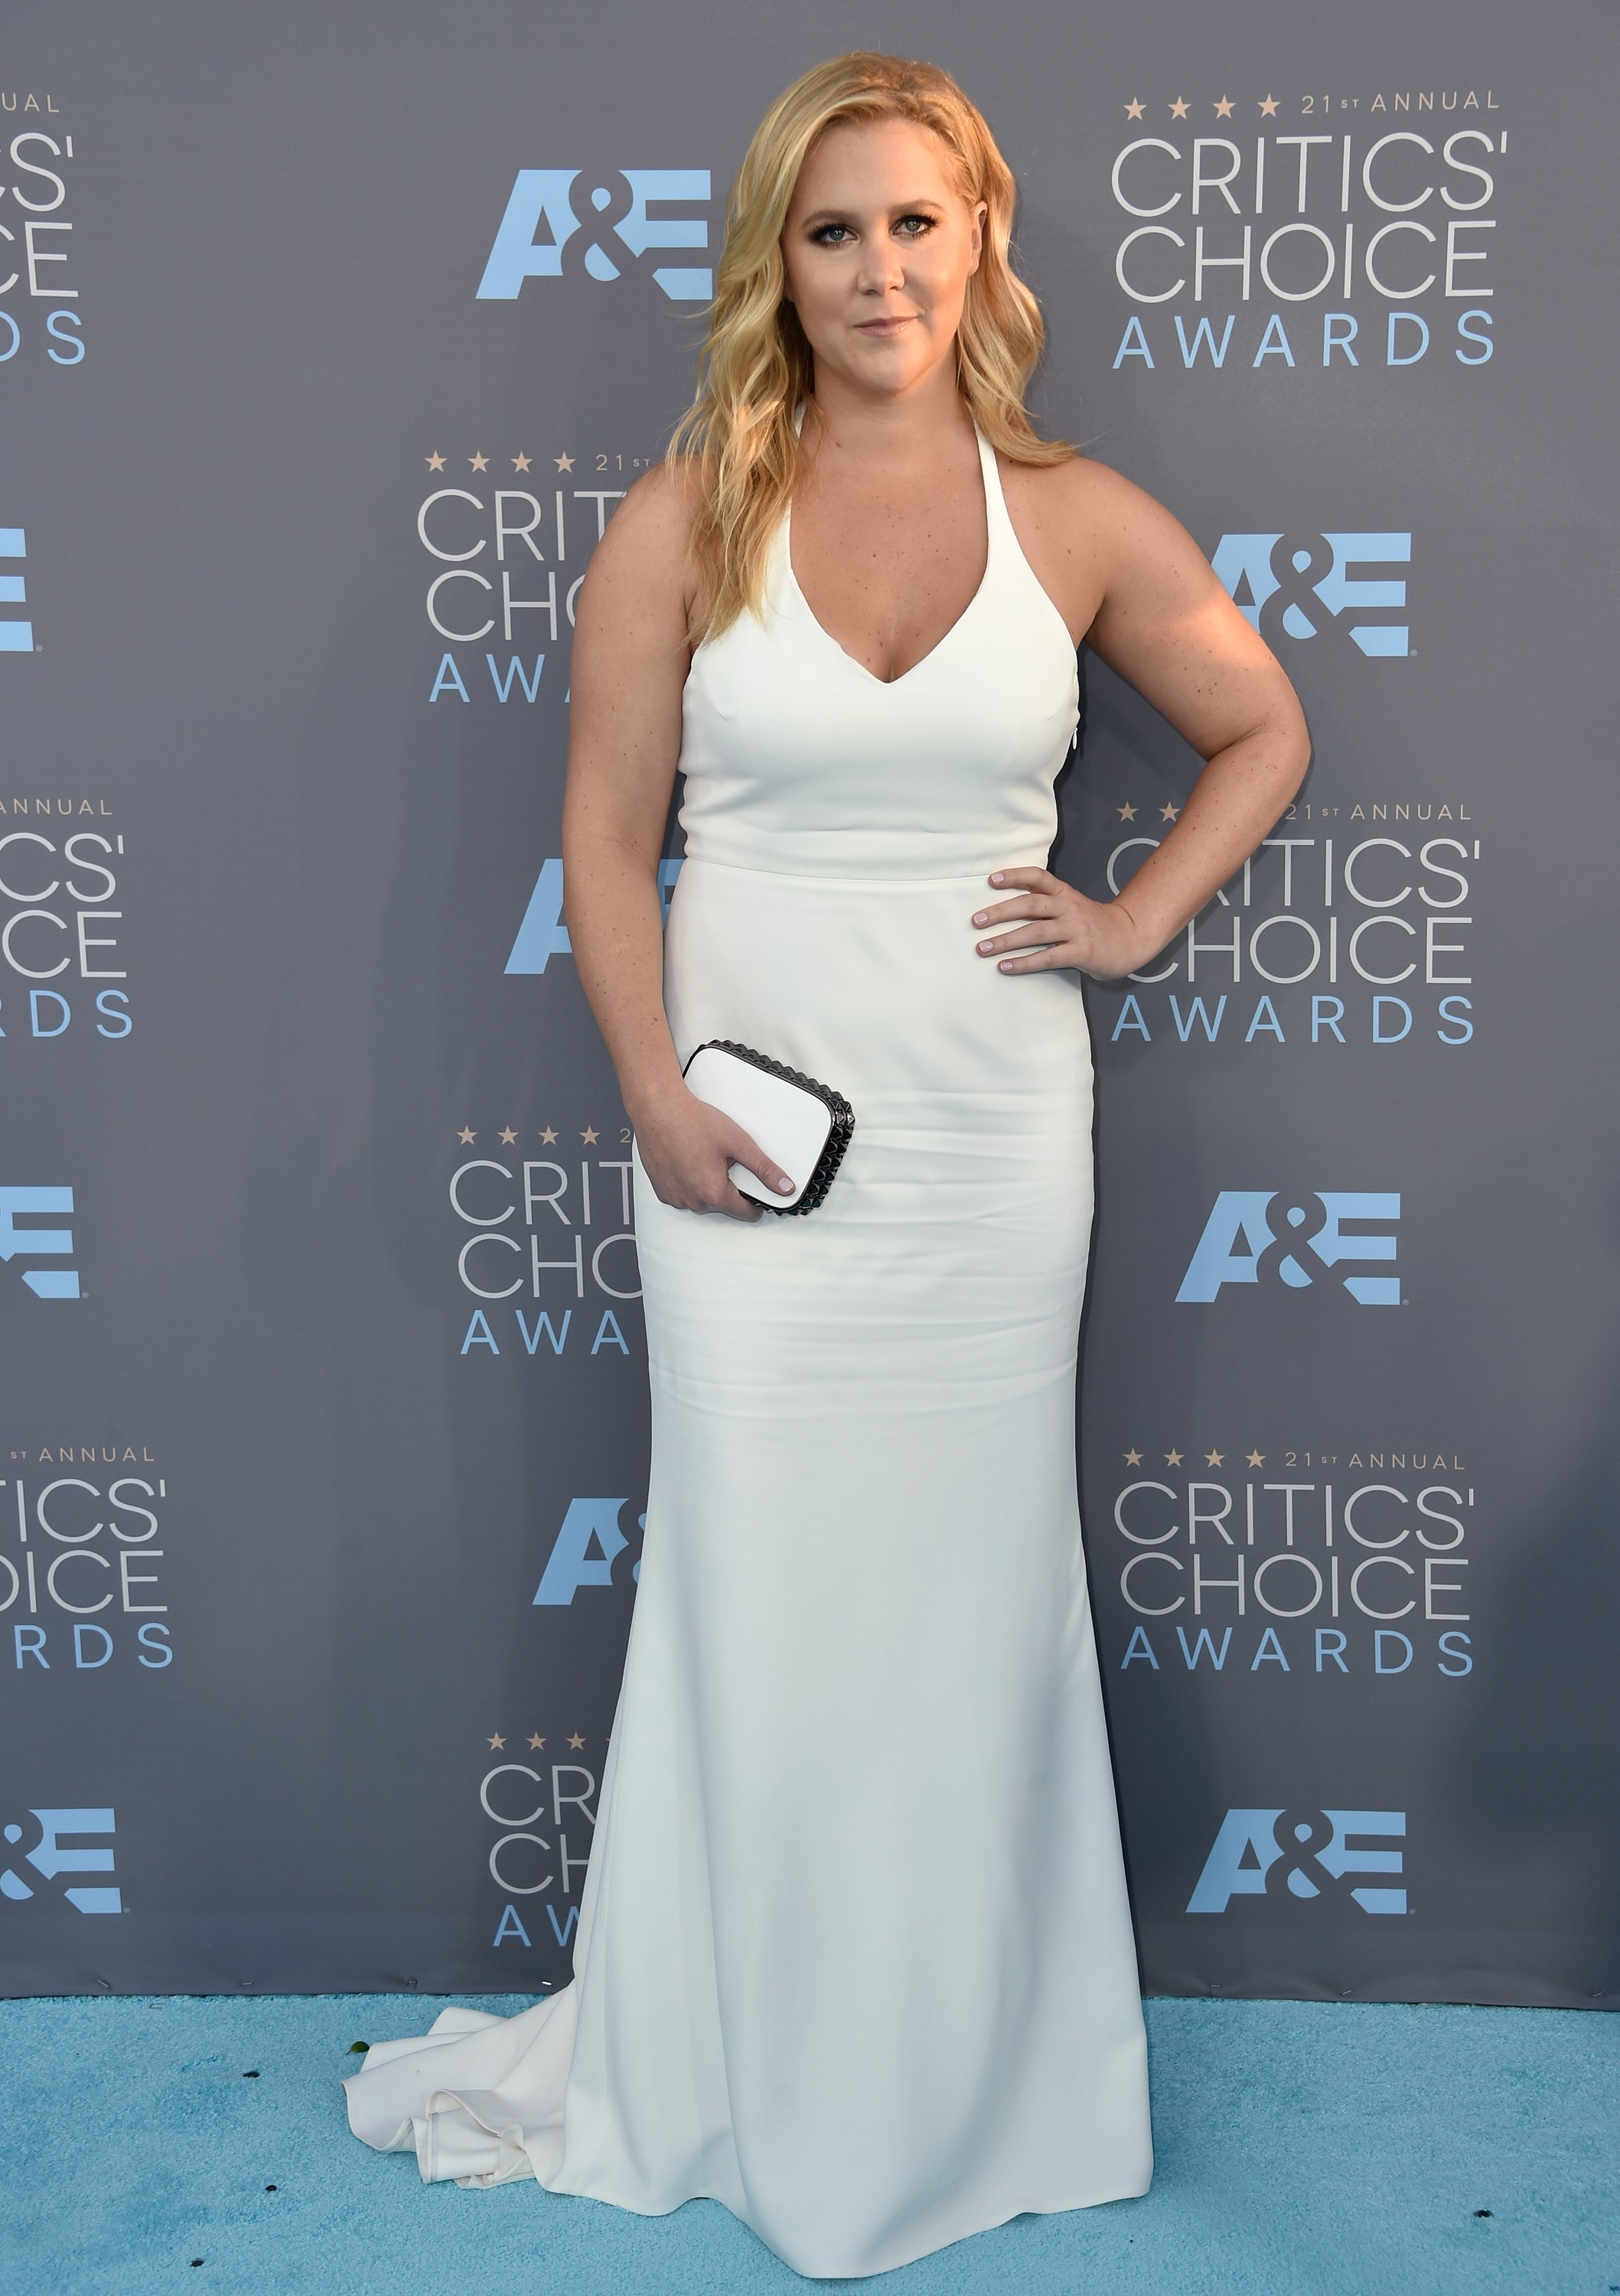 Amy Schumer accused of inciting death threats after posting photog pic